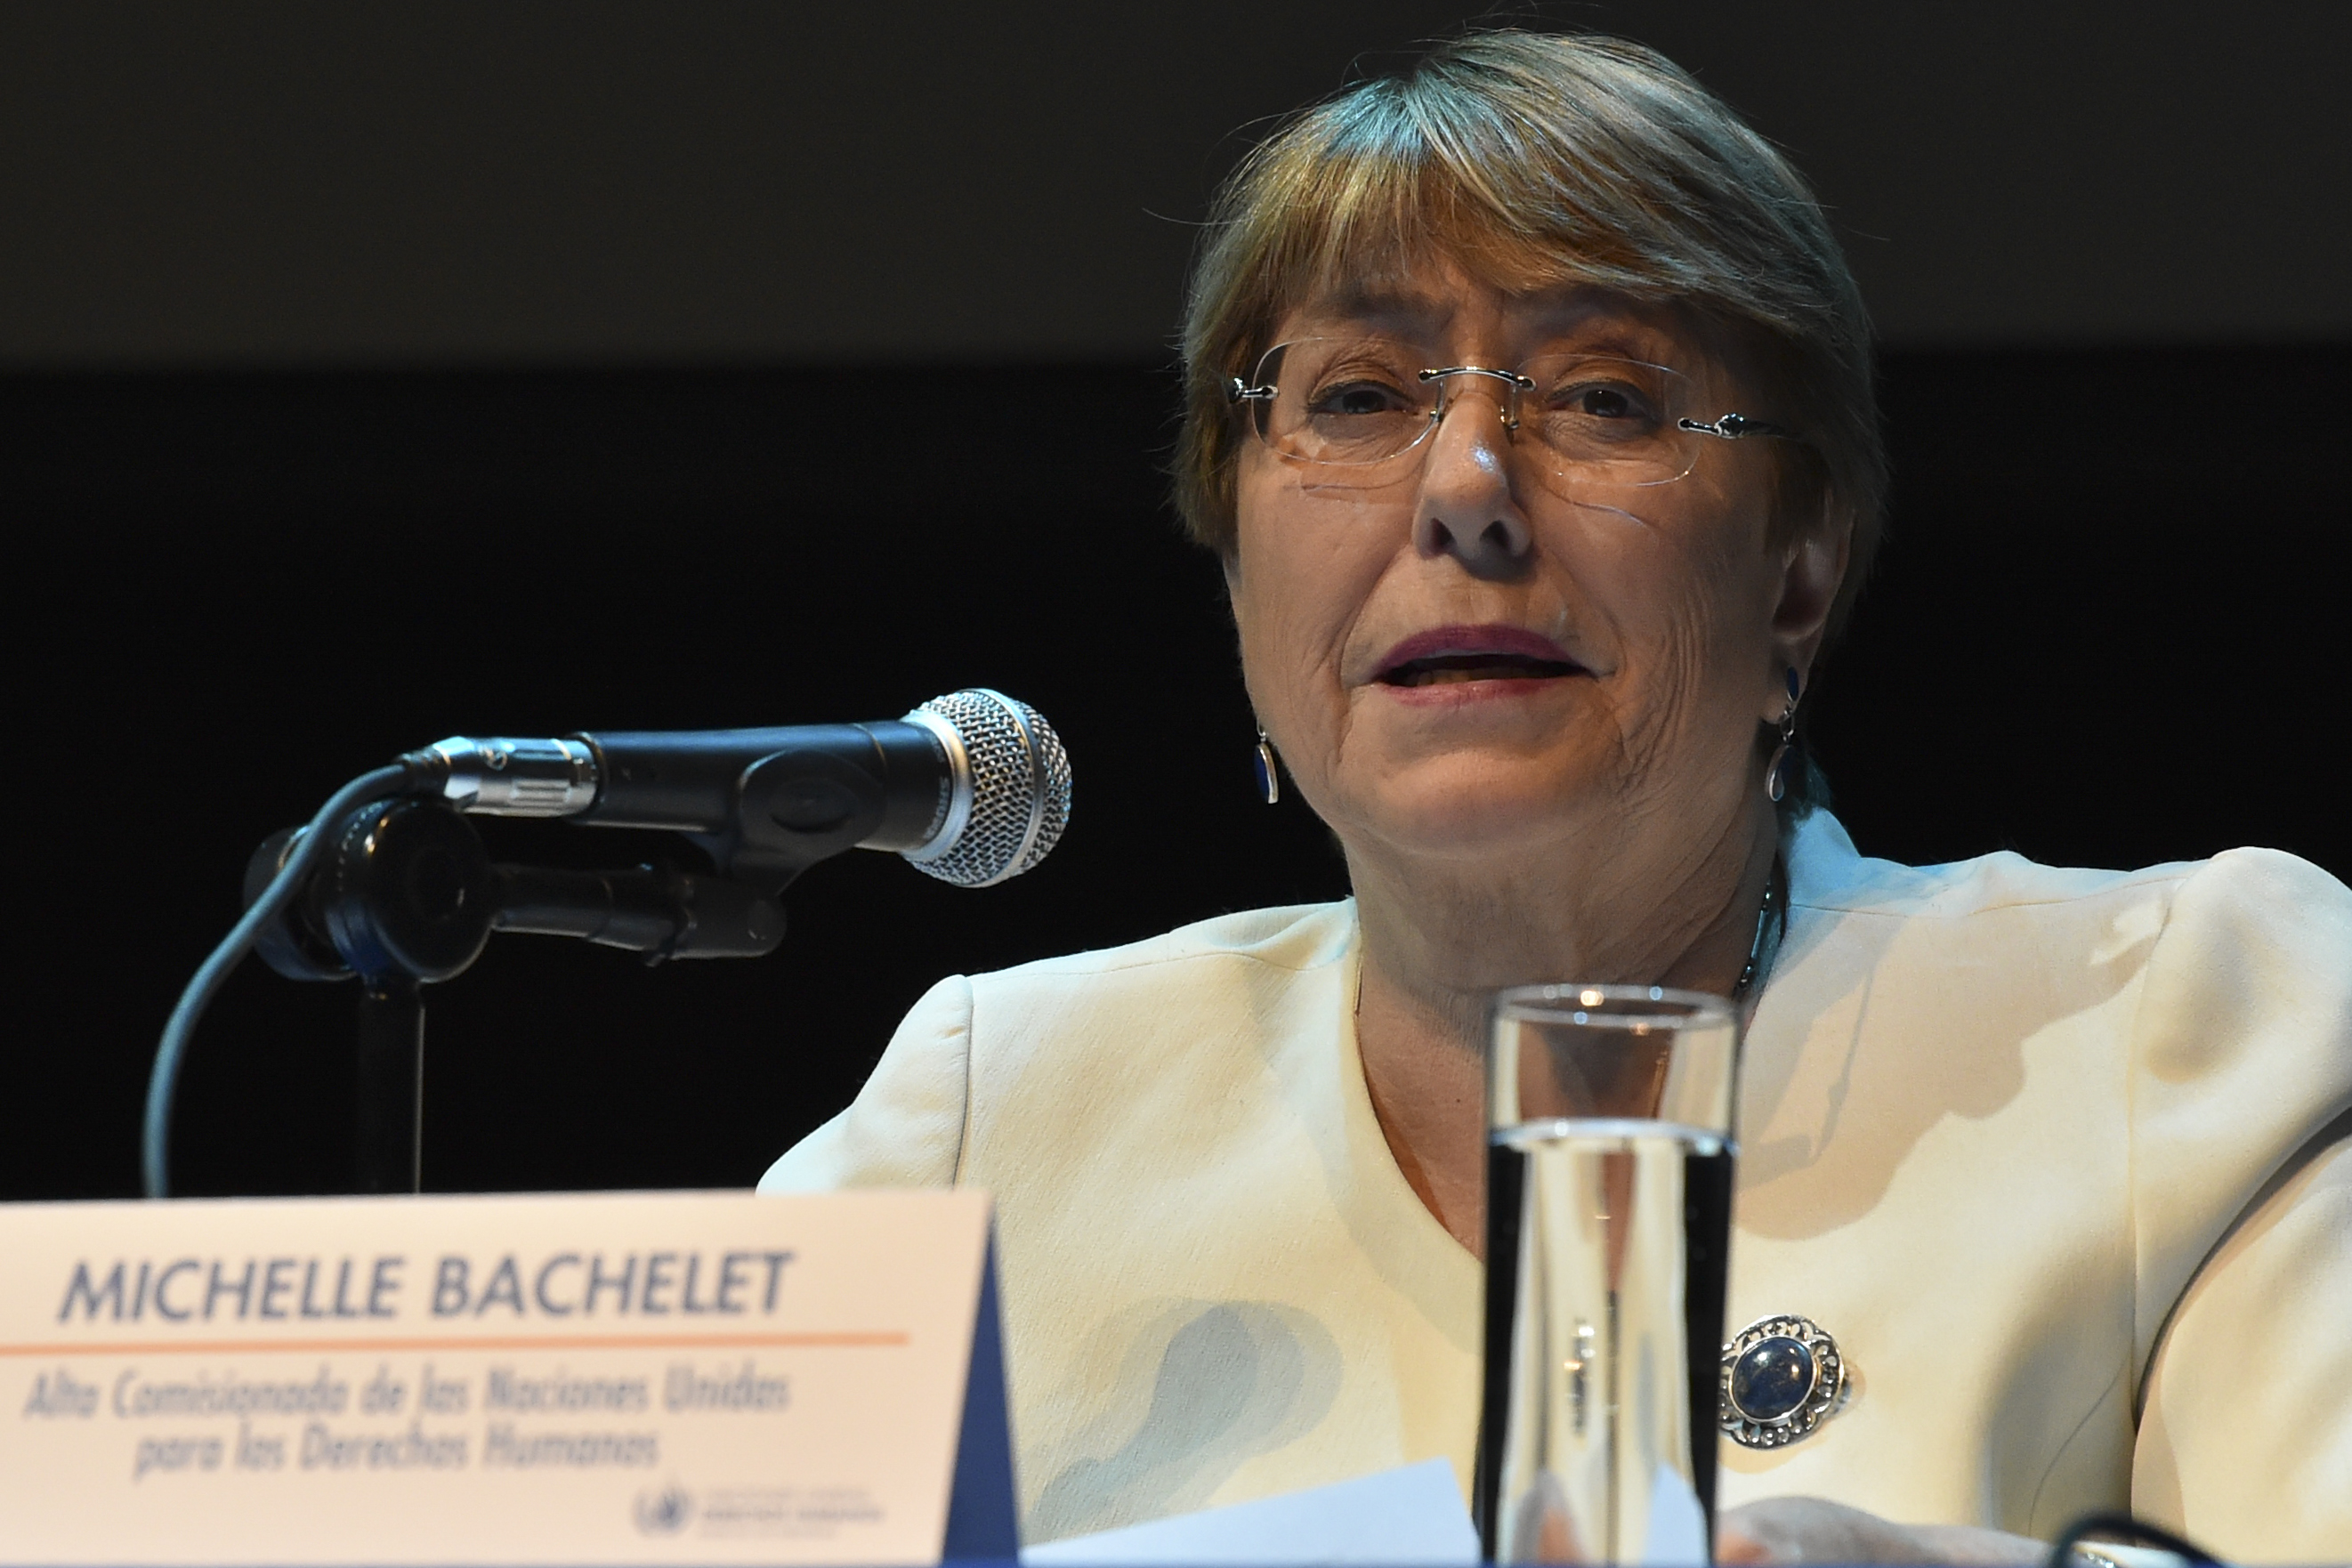 UN human rights chief Michelle Bachelet speaks during a press conference in Mexico City on April 9, 2019. (RODRIGO ARANGUA/AFP/Getty Images)